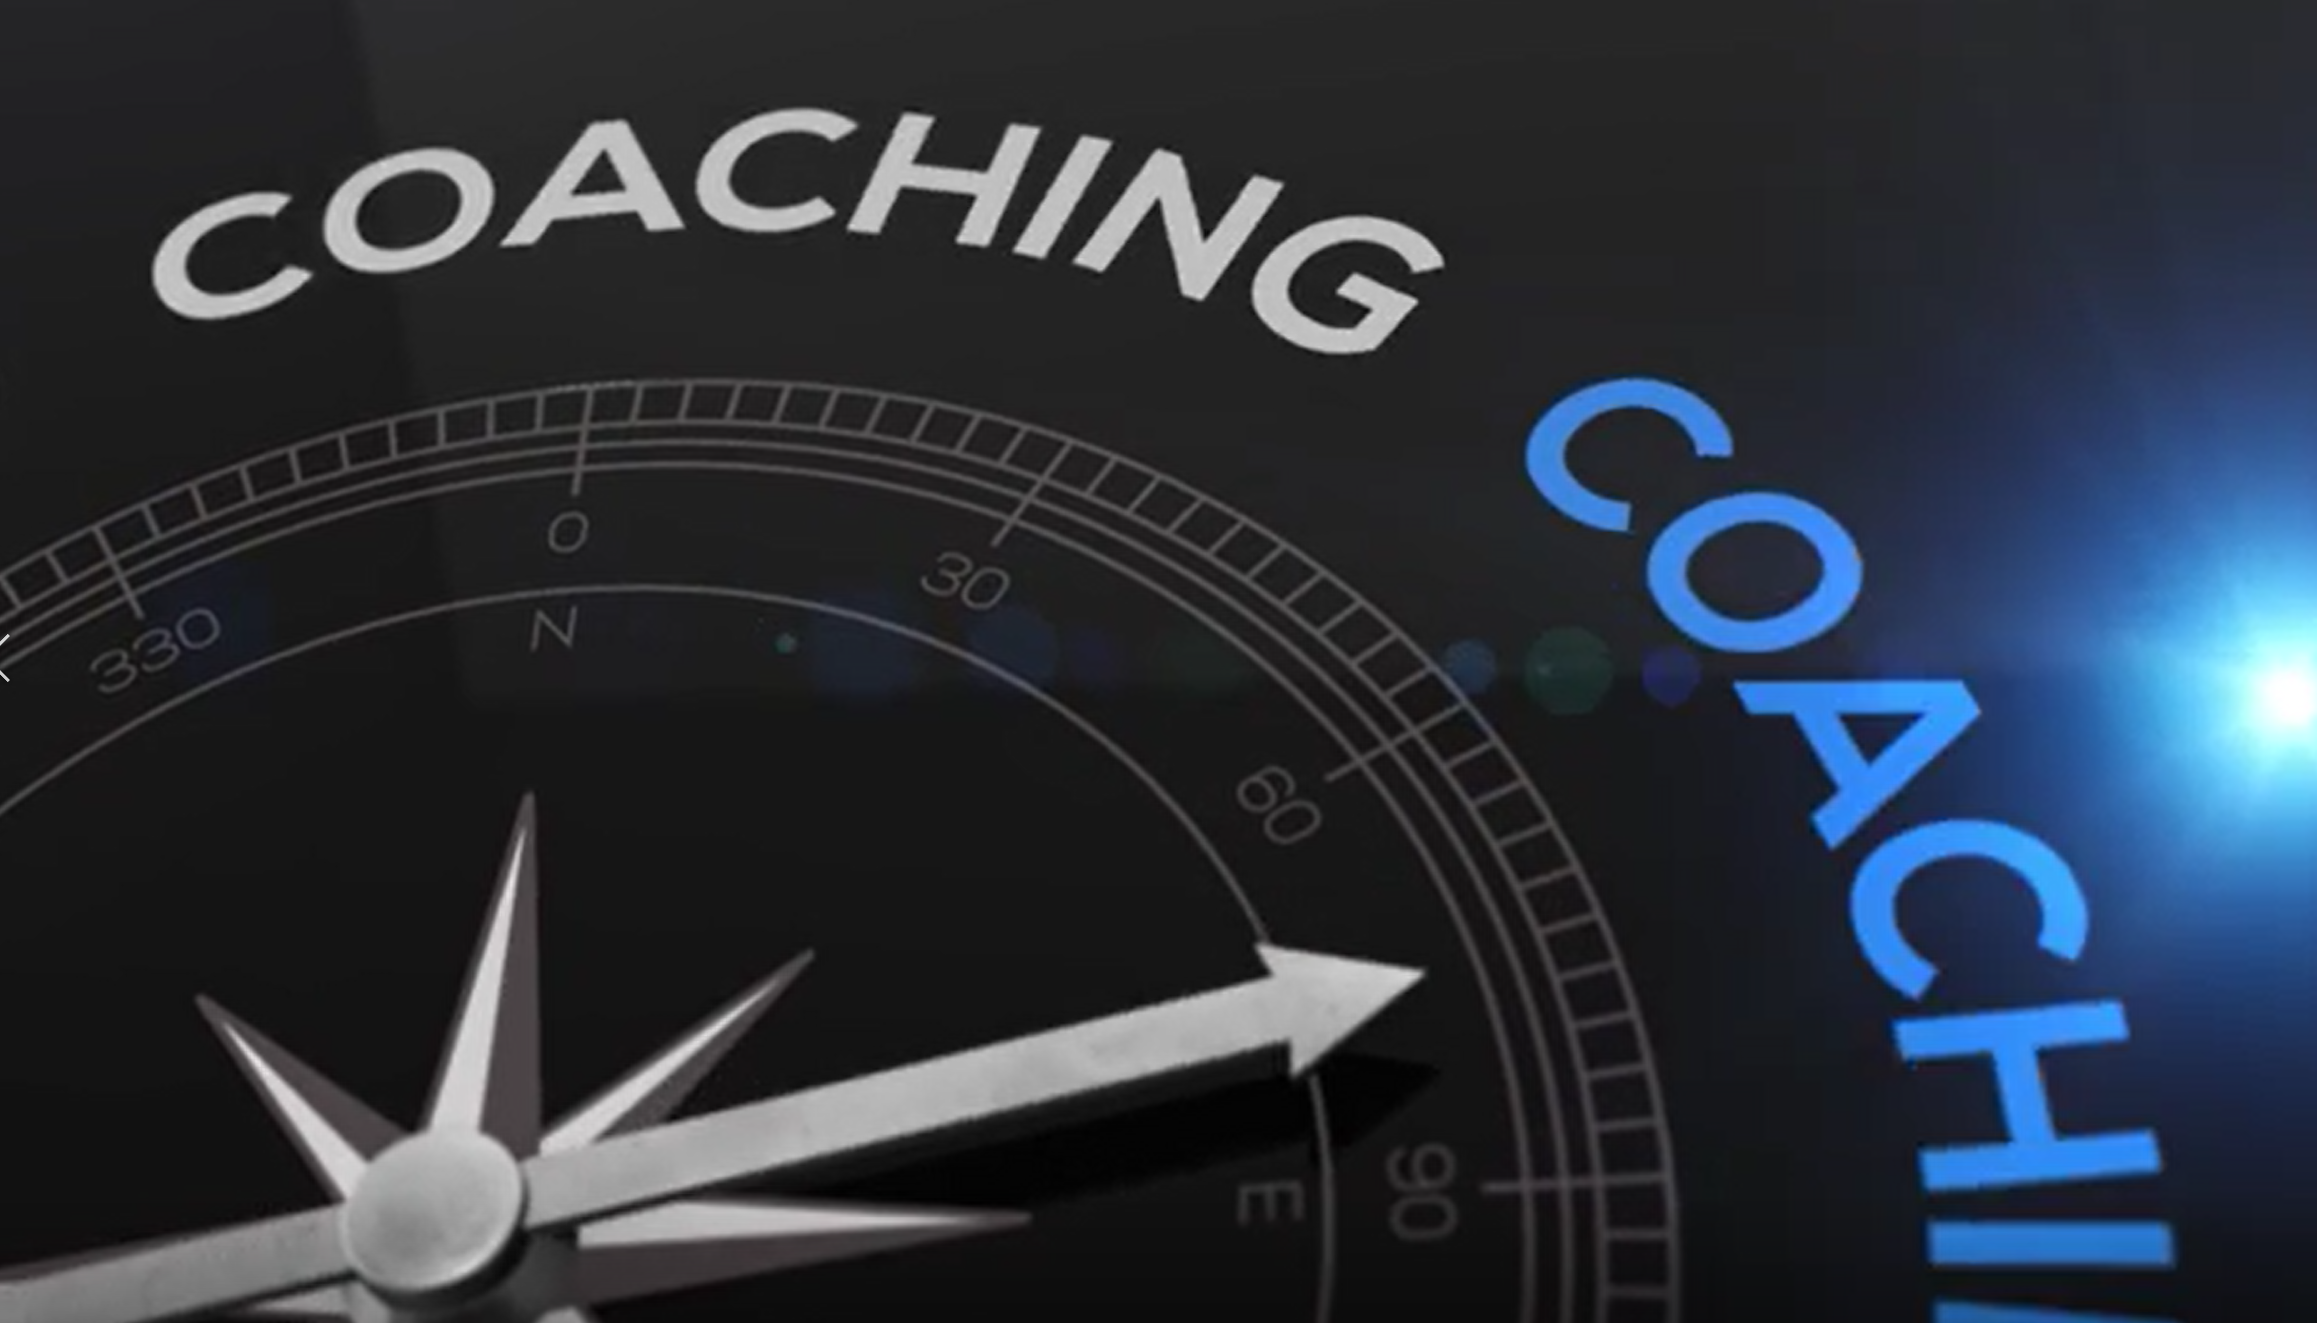 CONDUIT - Whether you call it coaching or consulting, our role is to be a conduit for your connection with yourself.